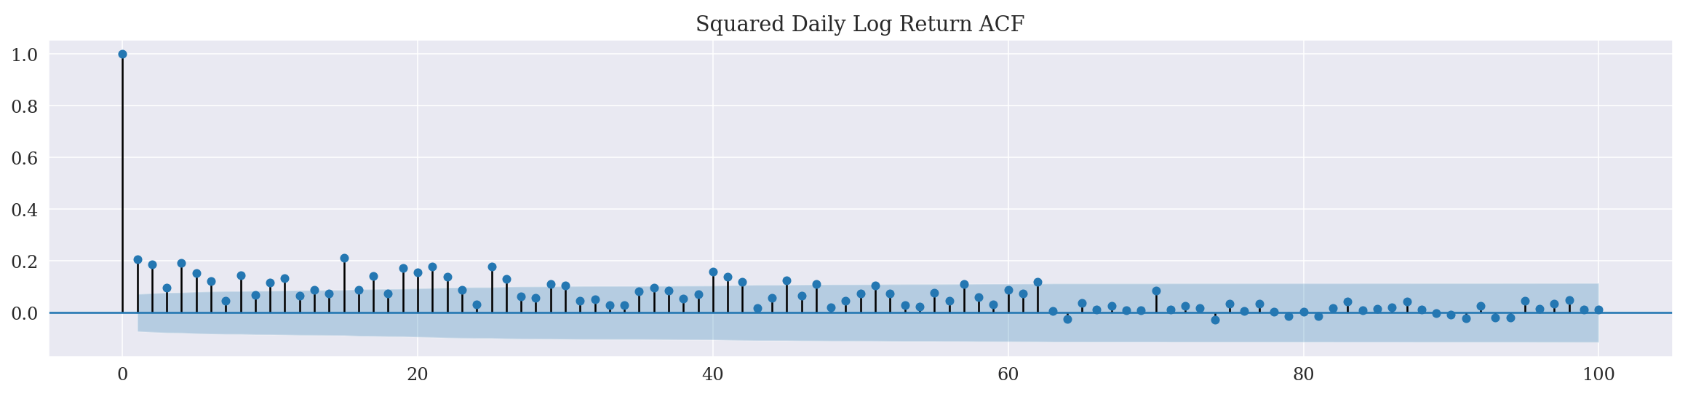 squared_daily_log_return_acf.png